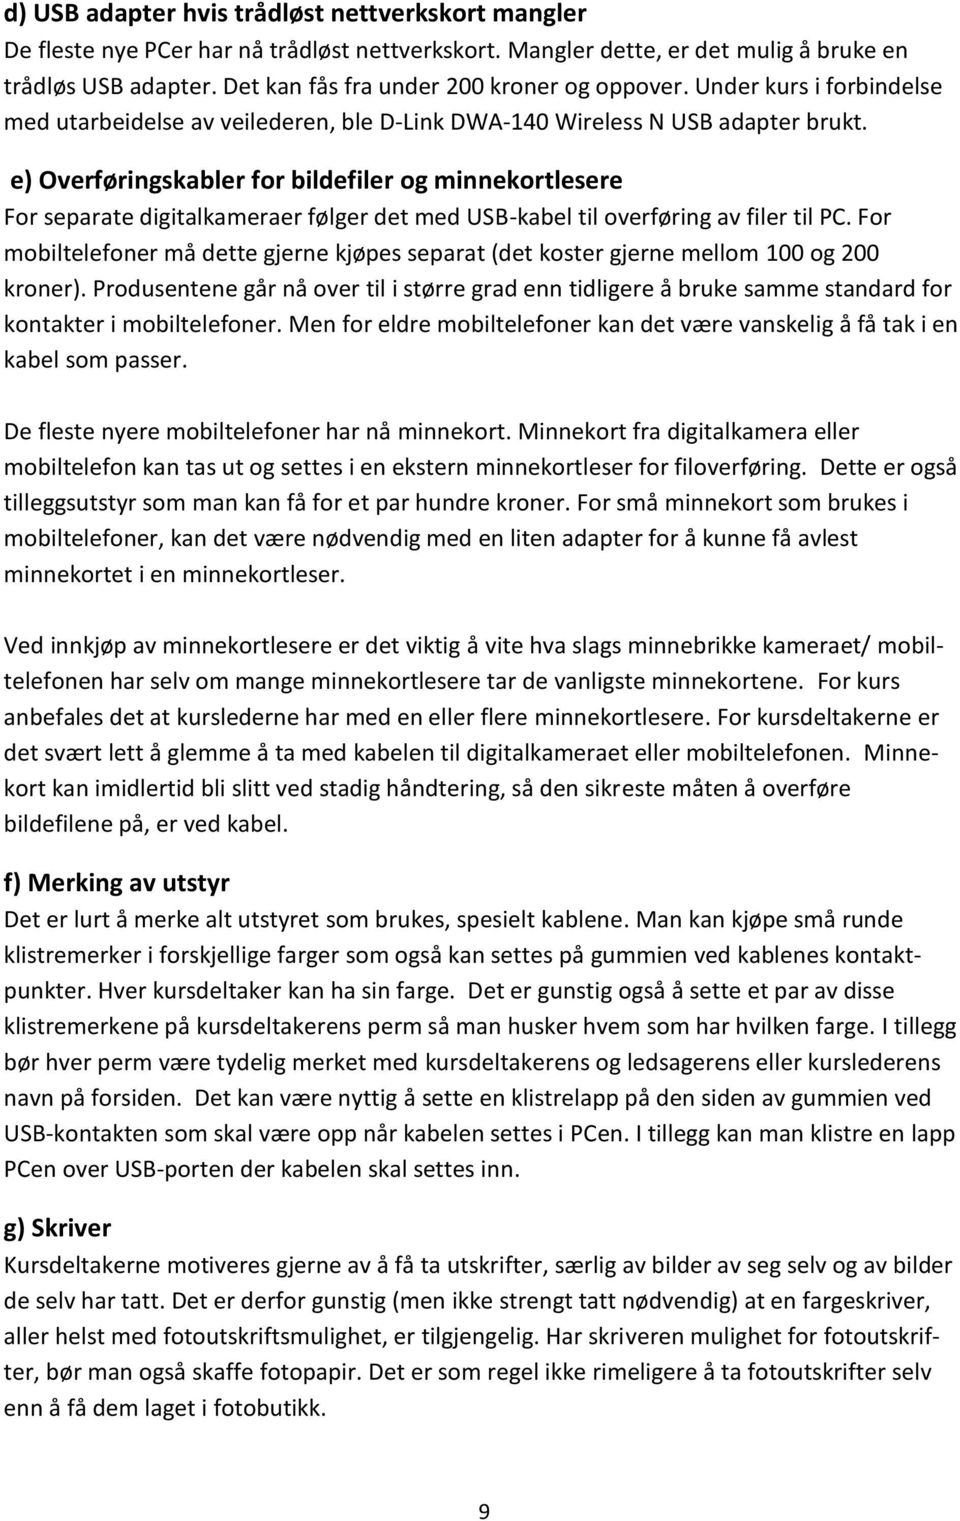 e) Overføringskabler for bildefiler og minnekortlesere For separate digitalkameraer følger det med USB-kabel til overføring av filer til PC.